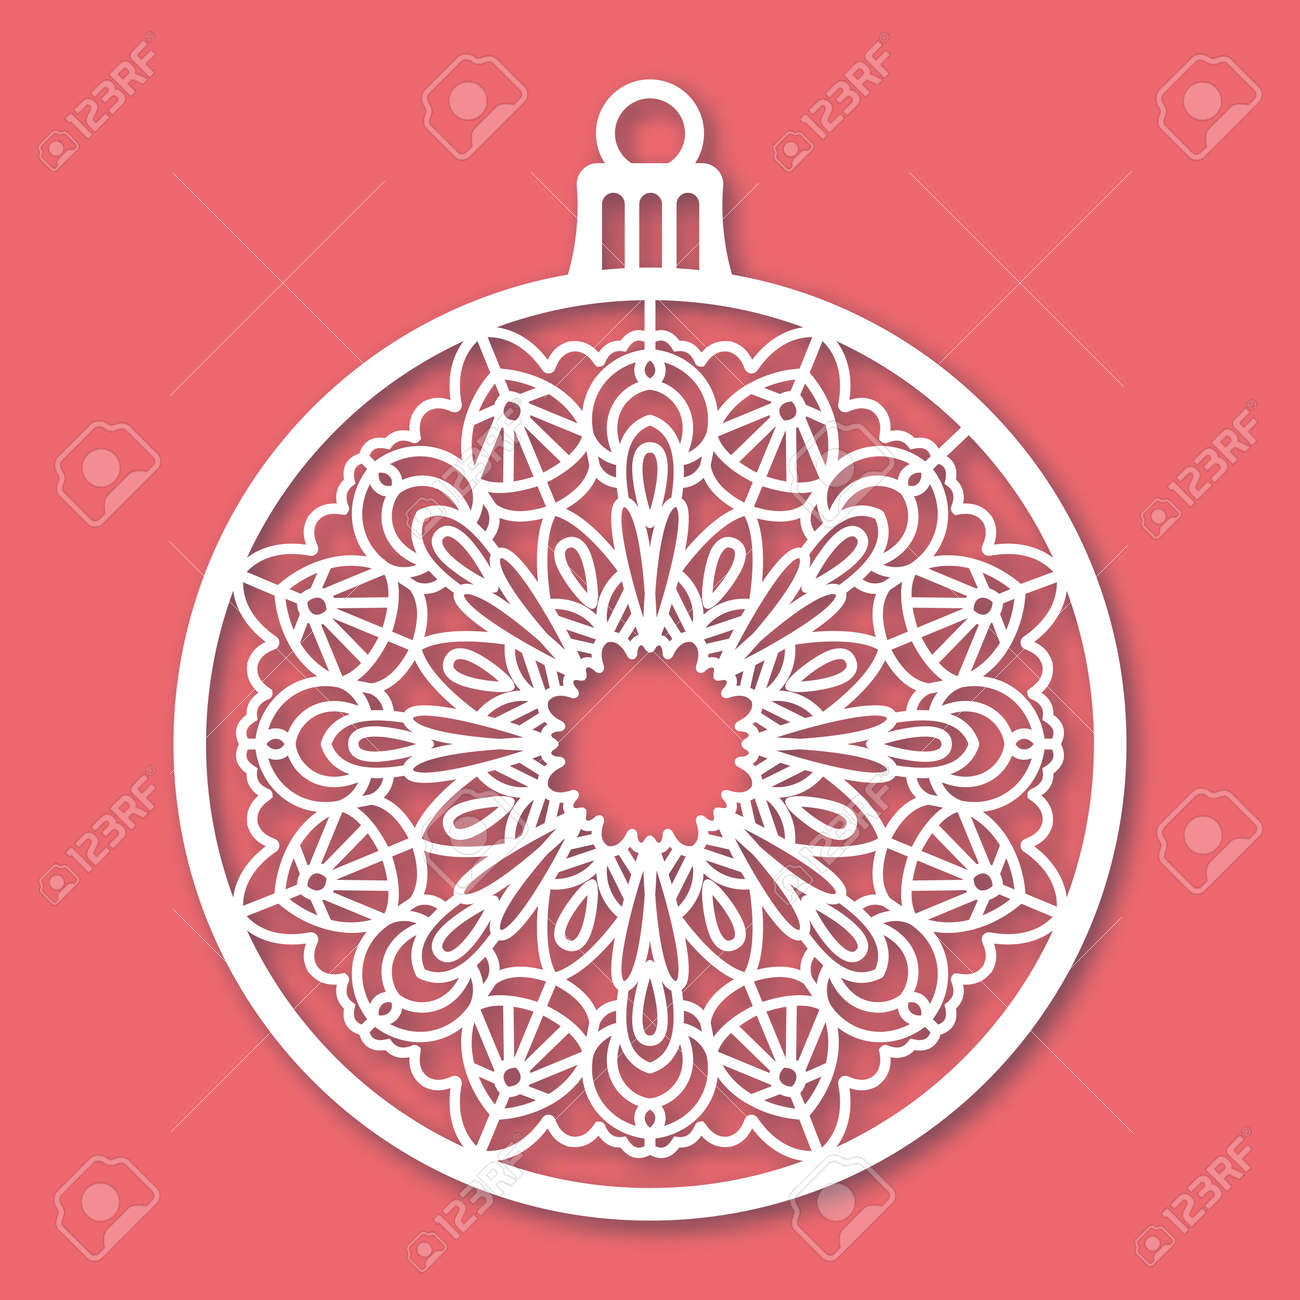 Christmas ball with snowflake laser cutting template for greeting christmas ball with snowflake laser cutting template for greeting cards envelopes invitations m4hsunfo